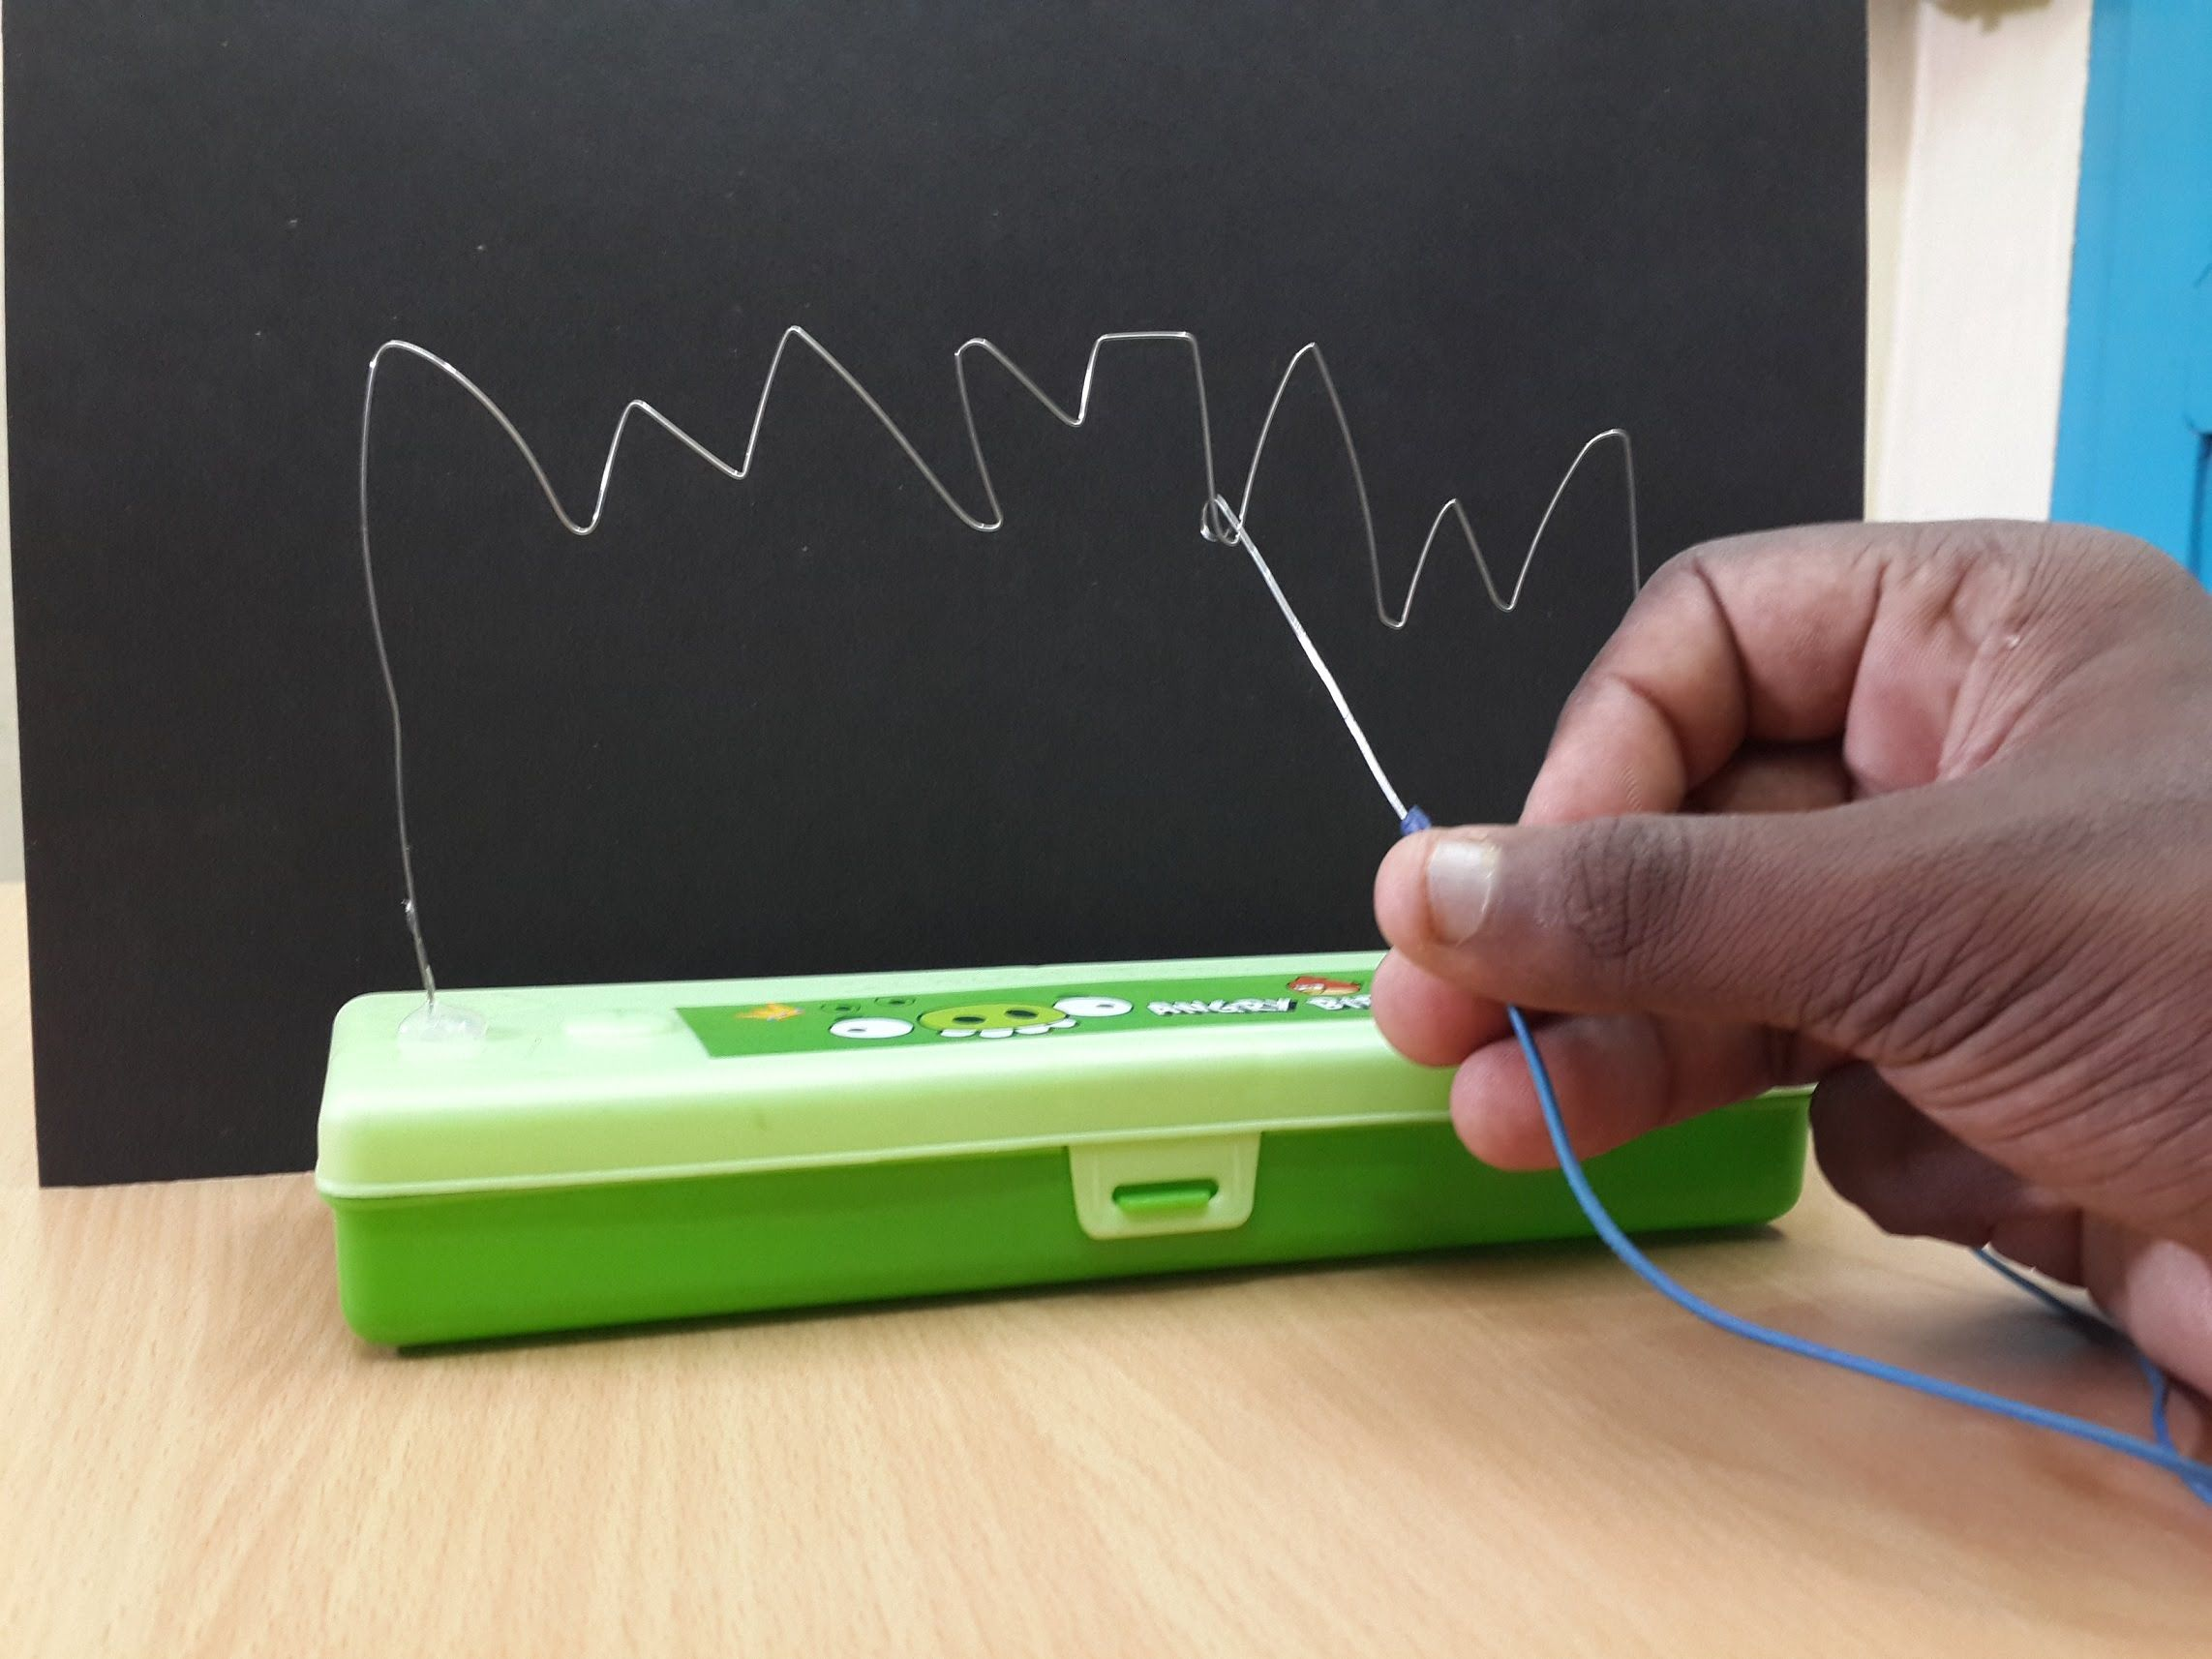 How To Make A Mini Diy Buzz Wire Game That Really Works Conductive Glue And Circuit Hlt Kids Pinterest